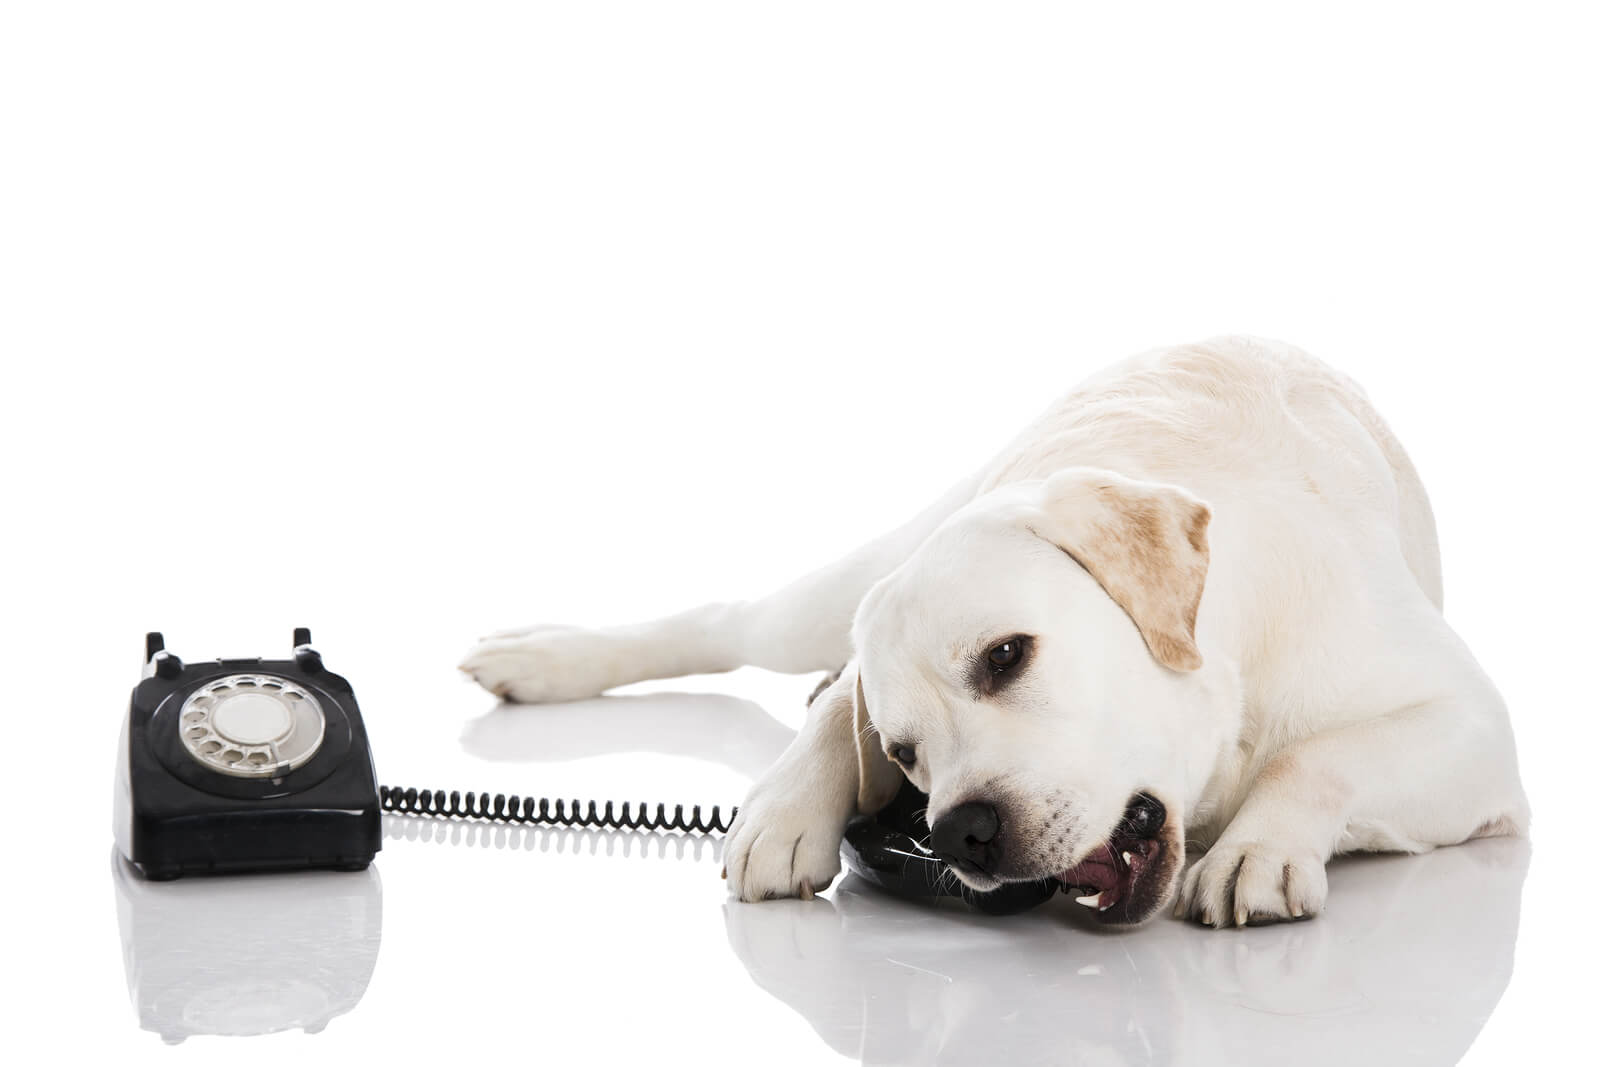 white dog biting a black telephone